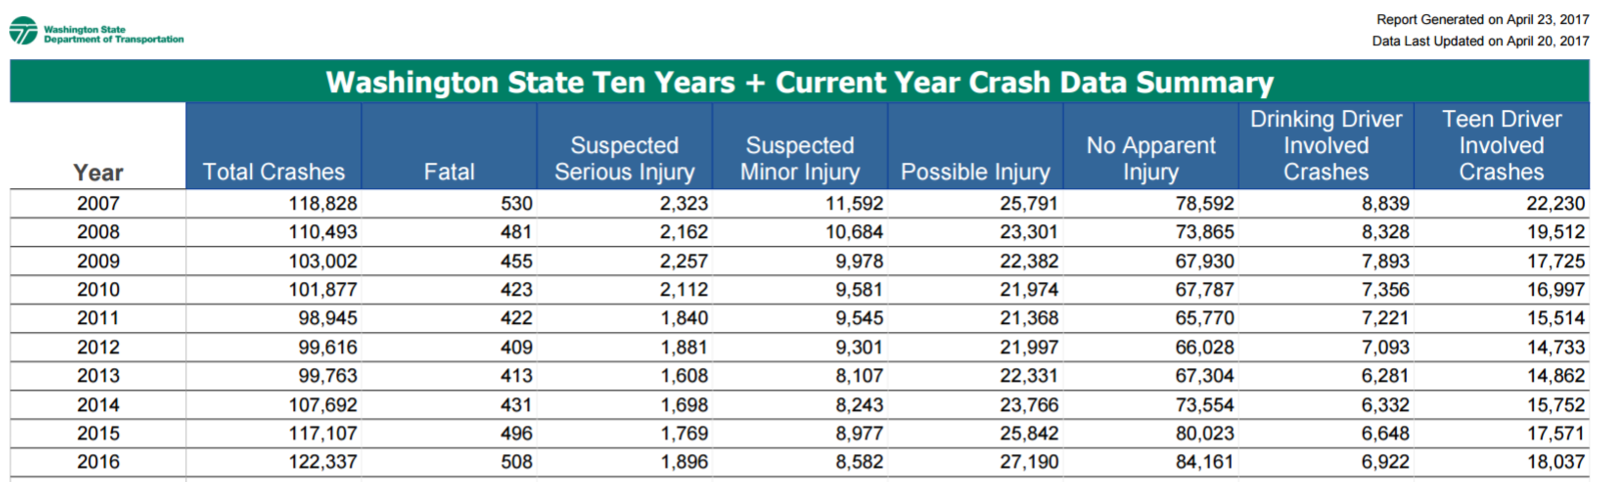 washington state crash data summary